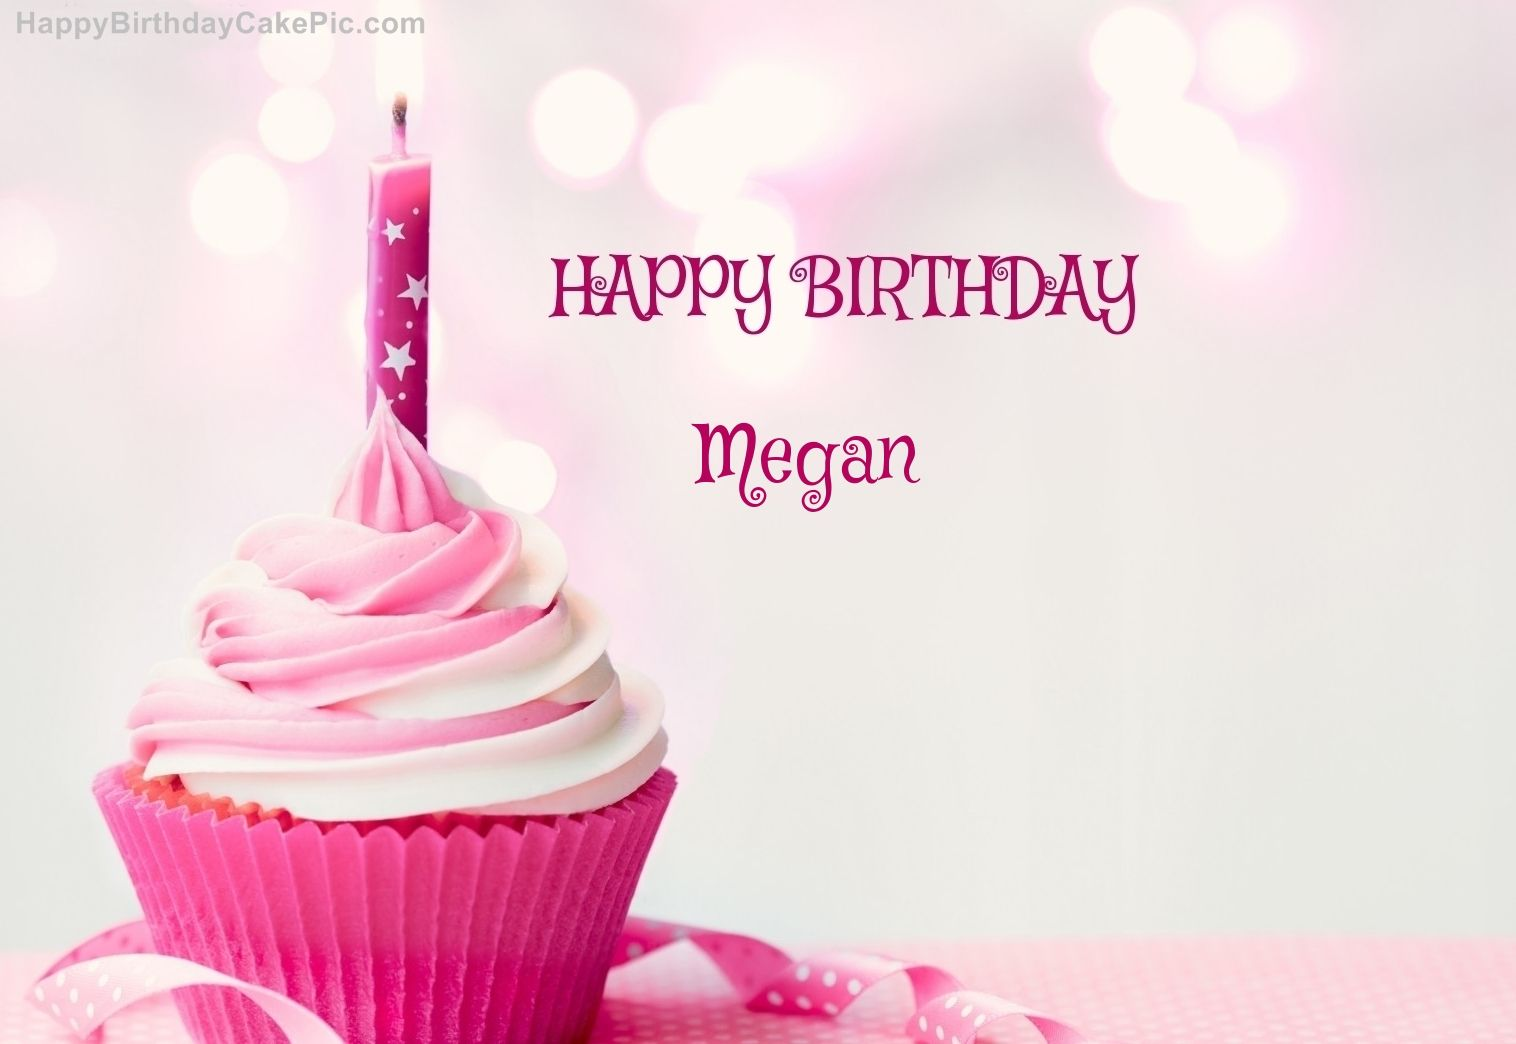 happy birthday megan images ; 0472bc6eacd17bb0ef8e977c9a36302a